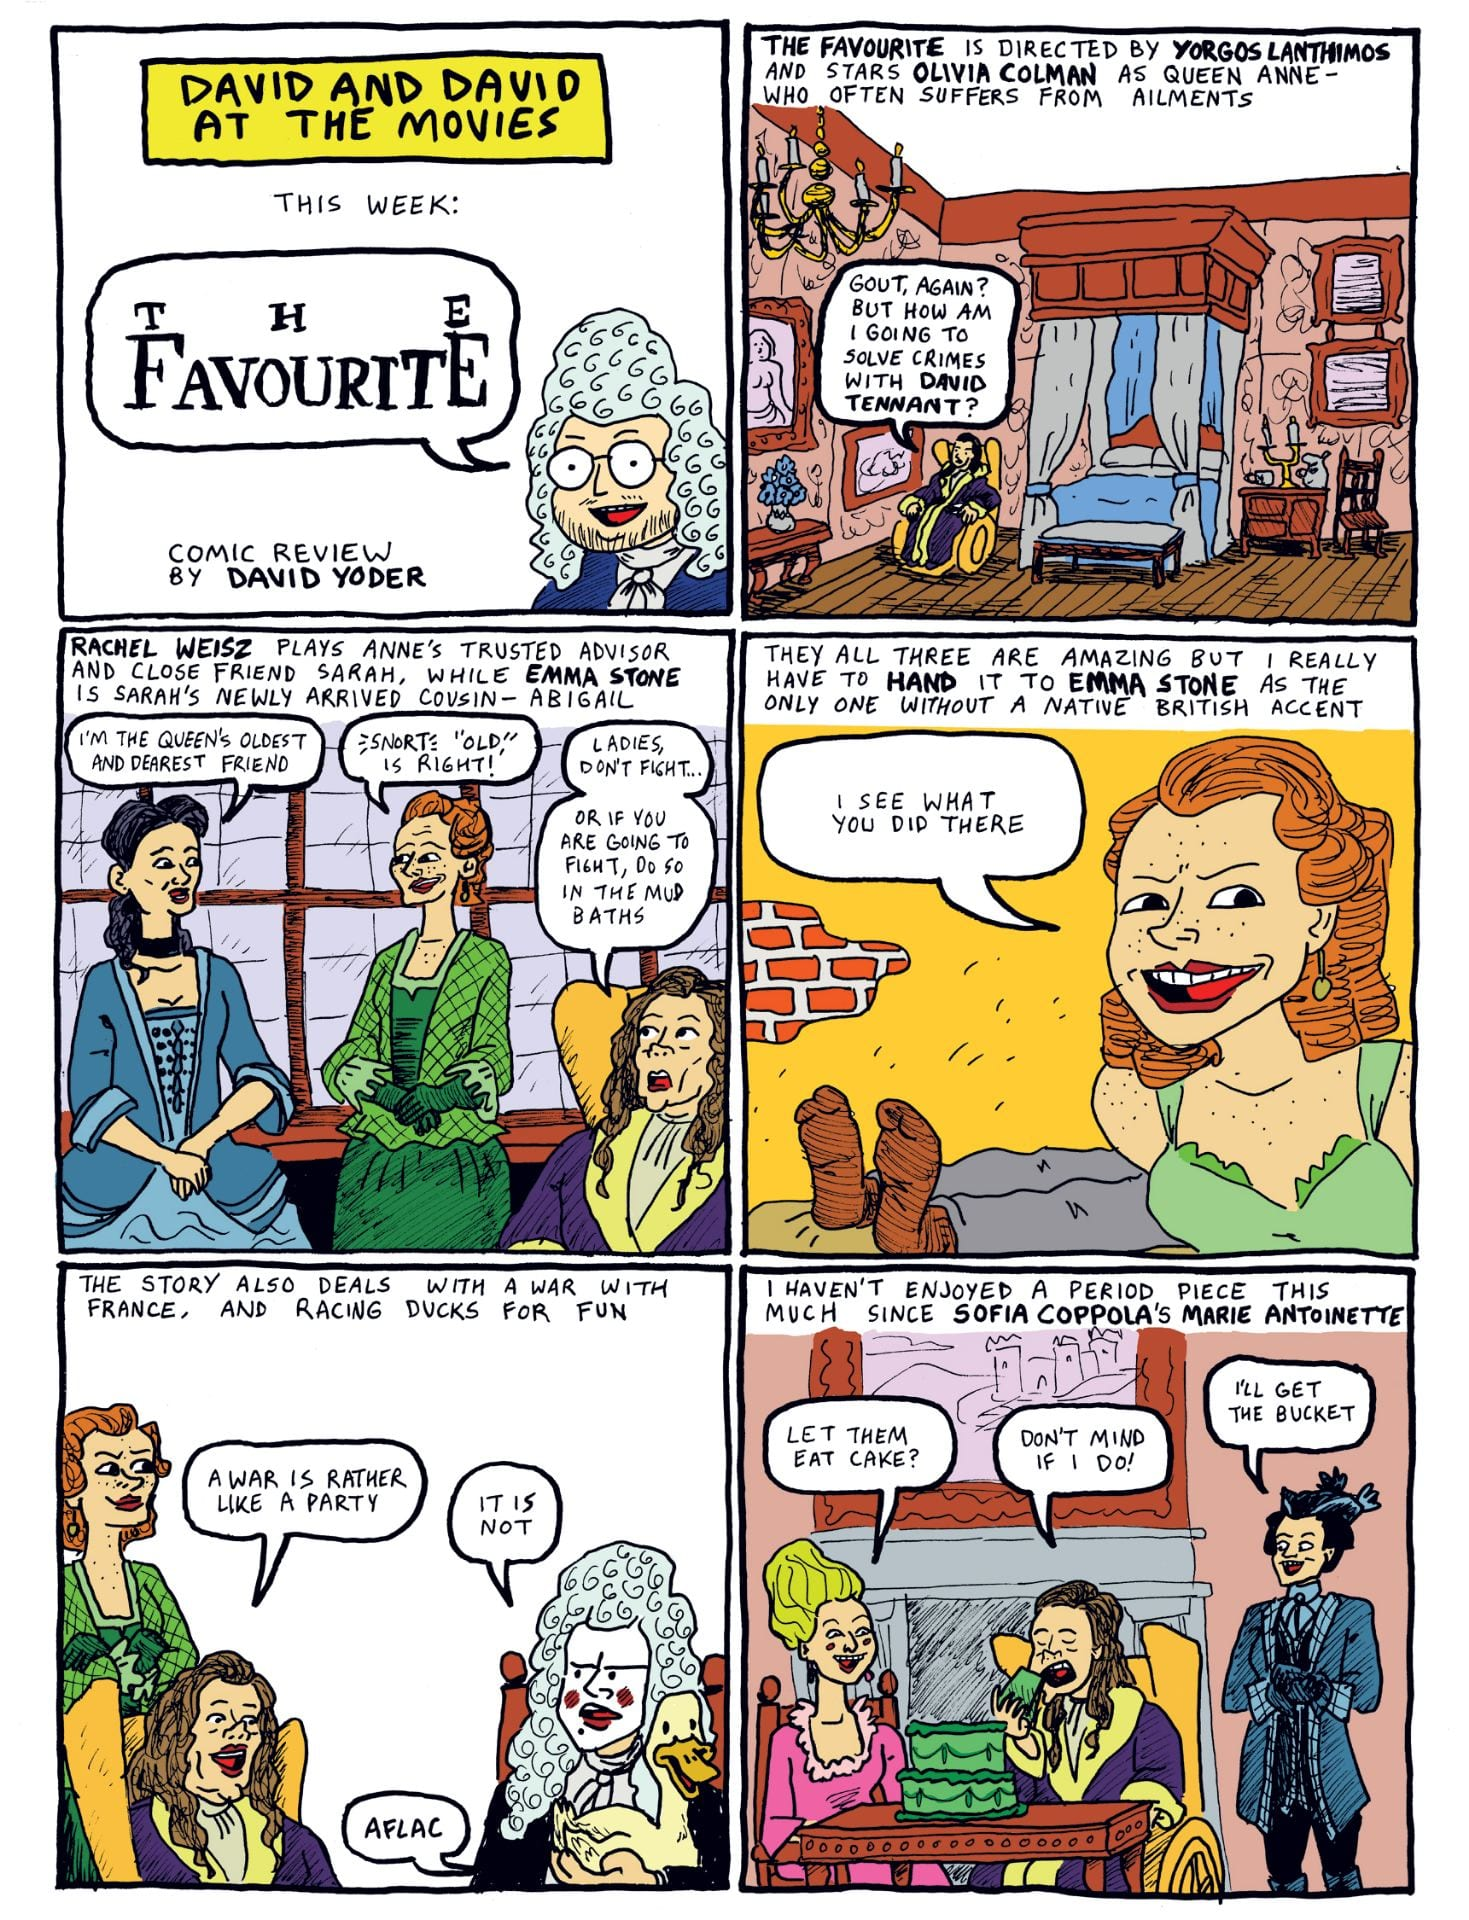 The Favourite comic review